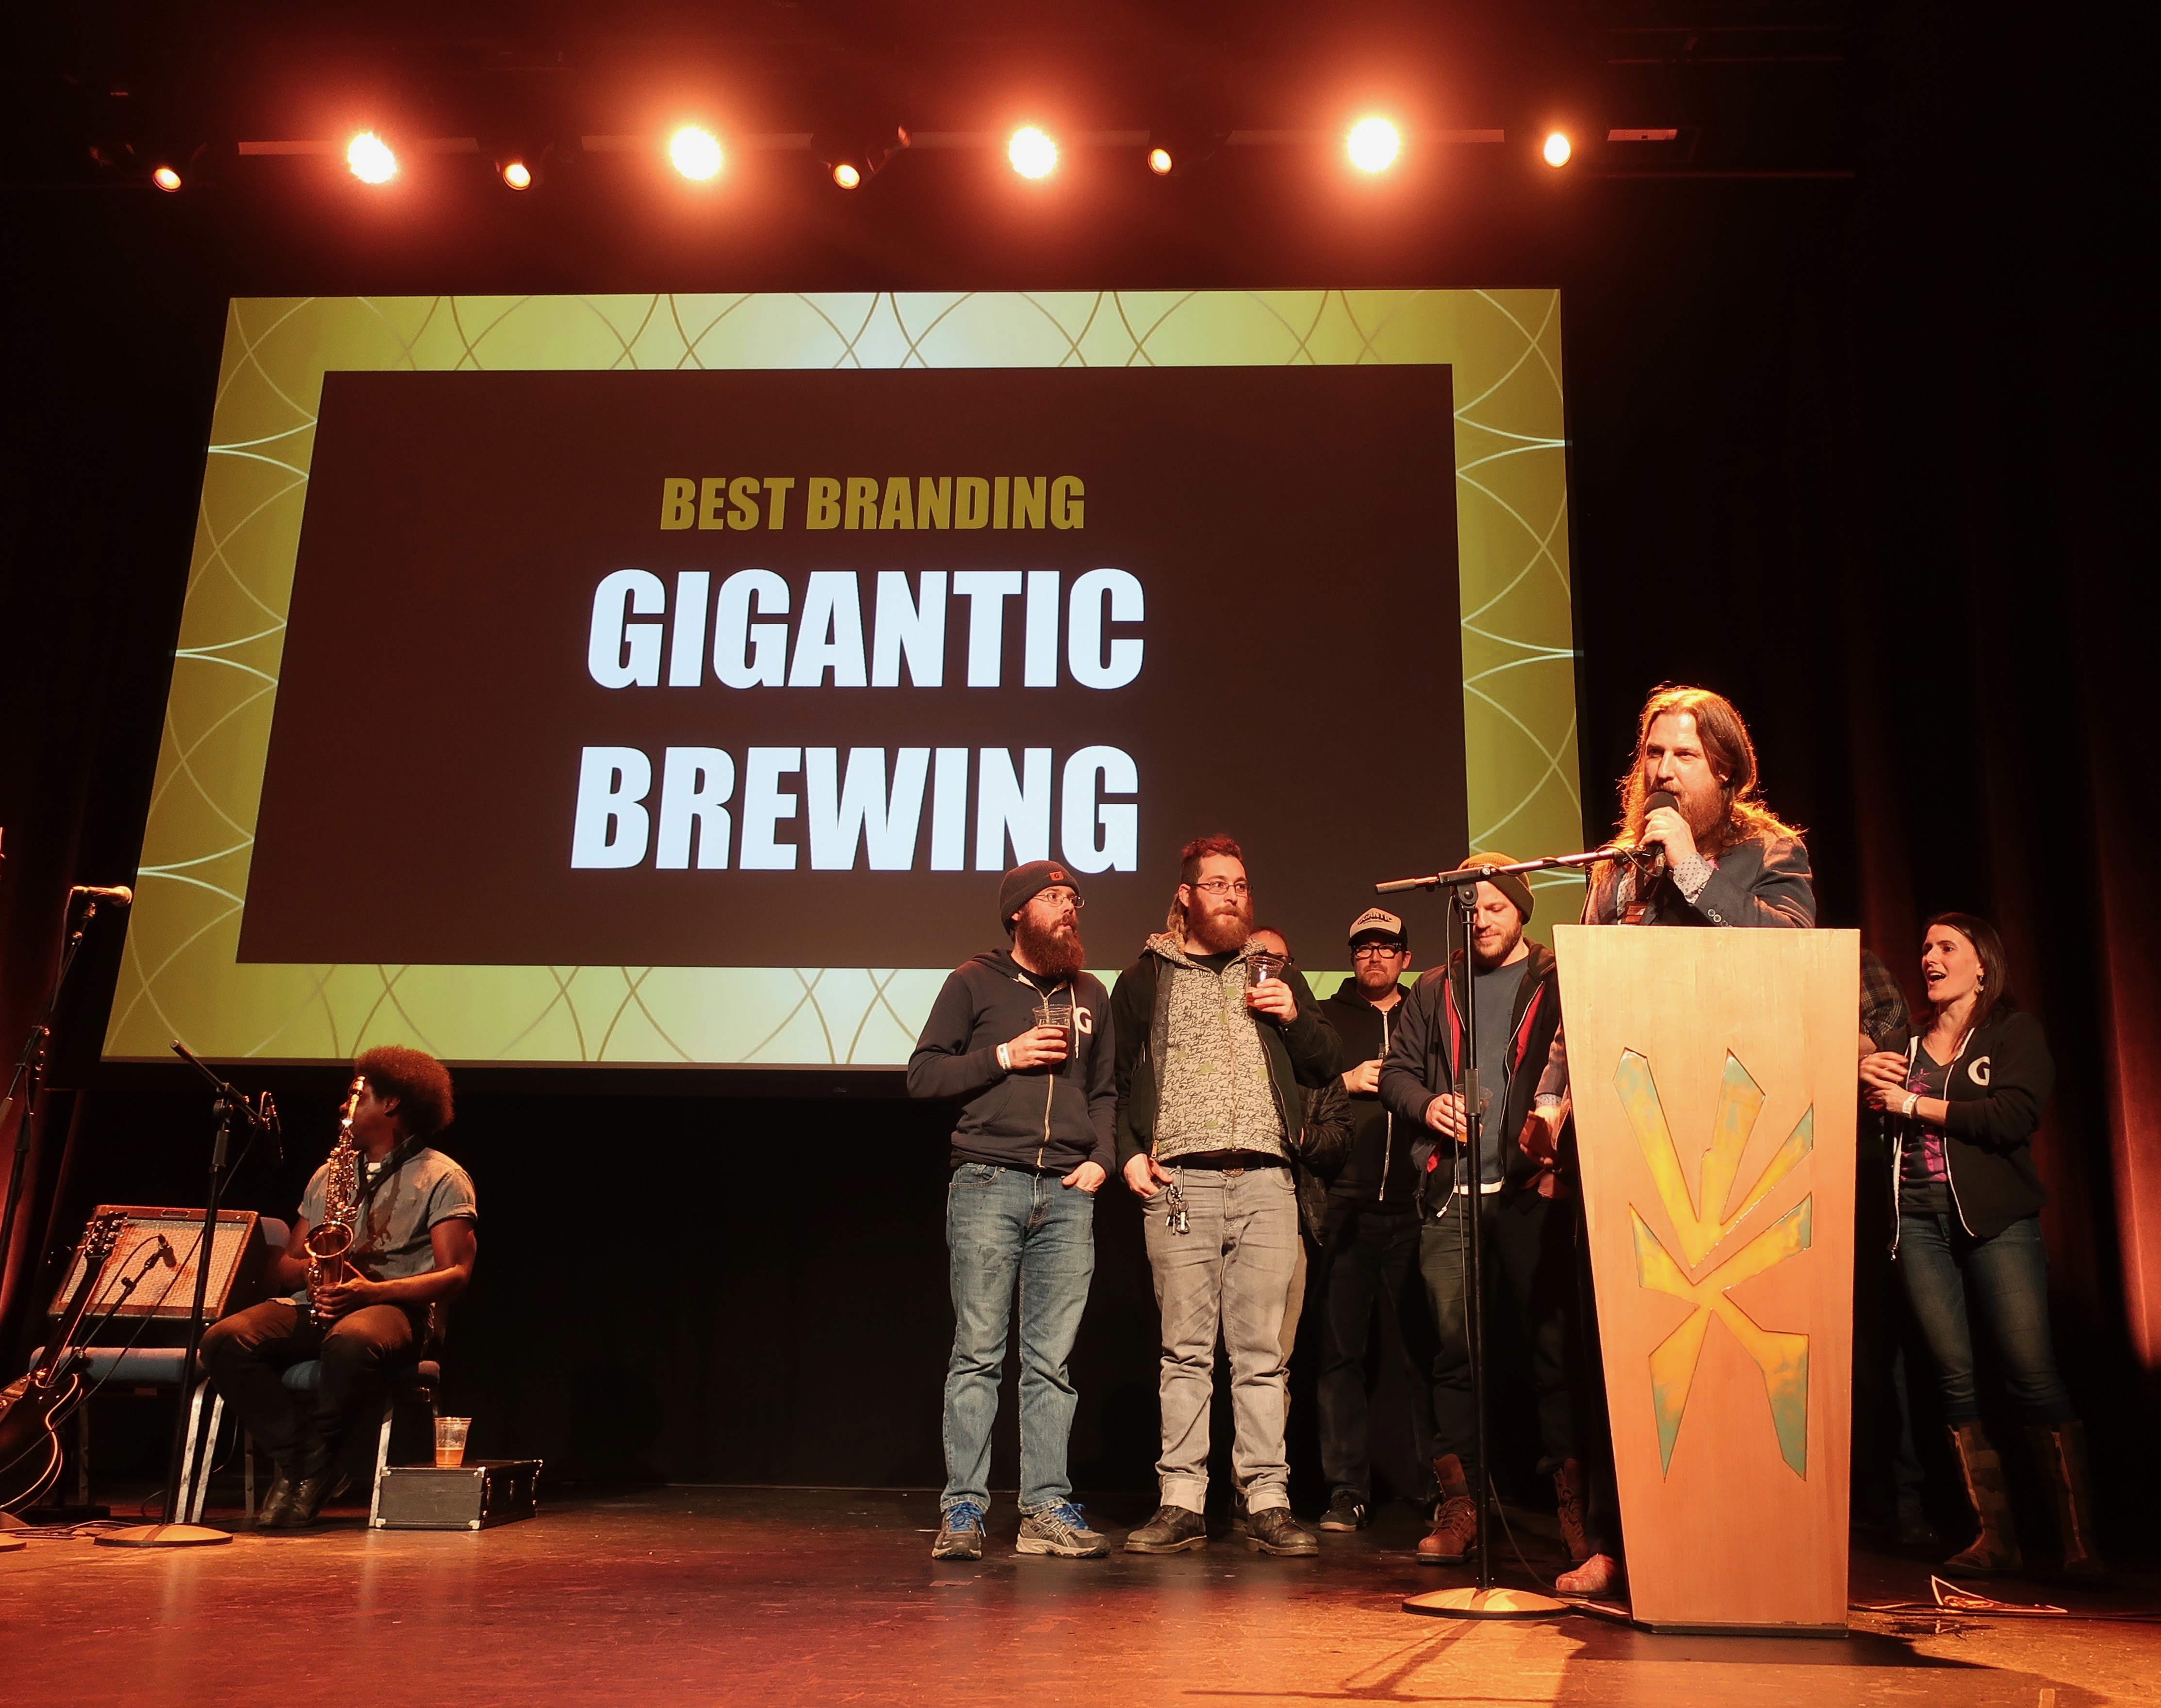 Gigantic Brewing wins Best Branding at the 2019 Oregon Beer Awards.